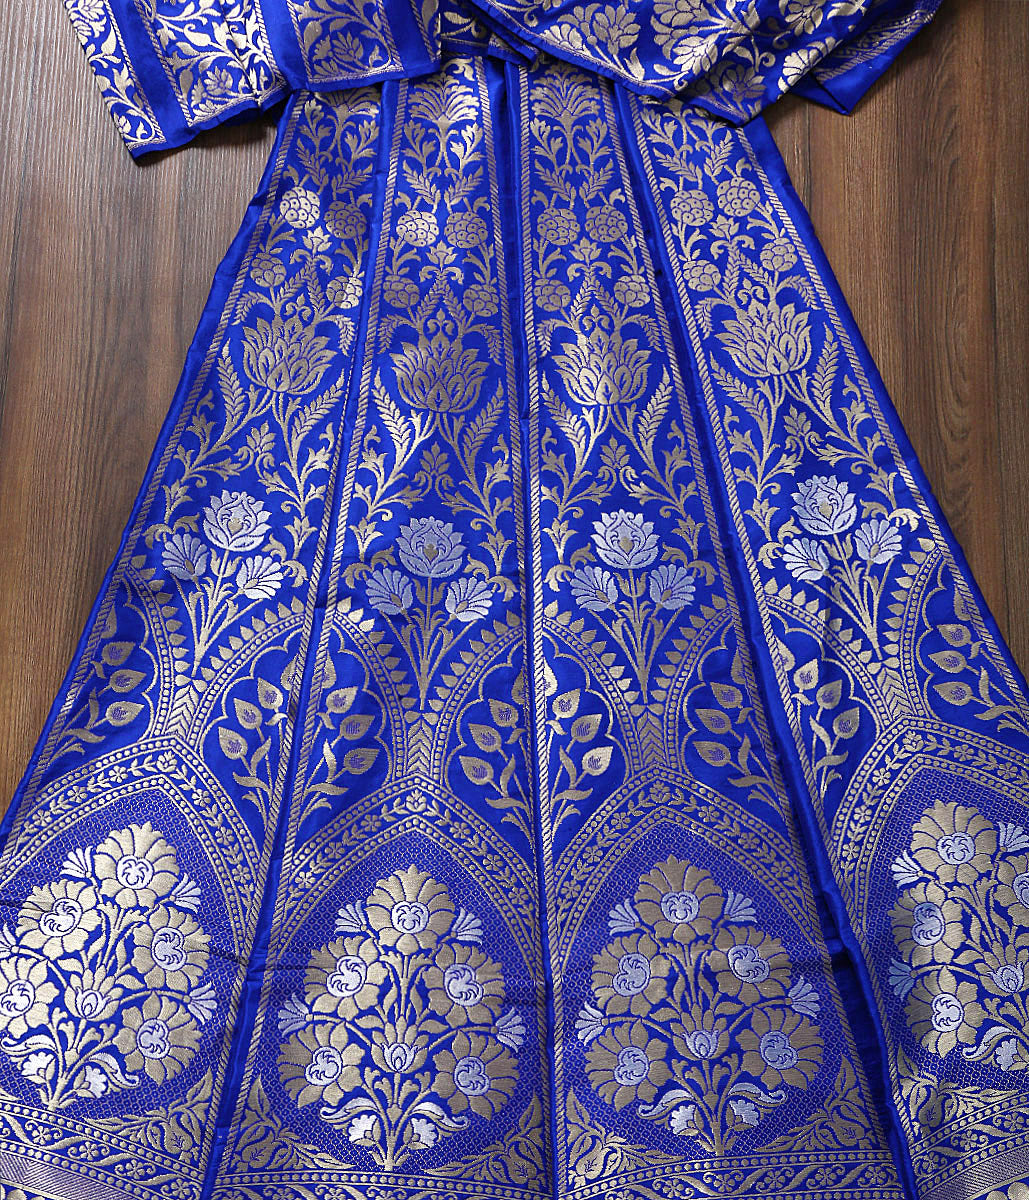 Handwoven Banarasi Royal Blue Cutwork Lehenga